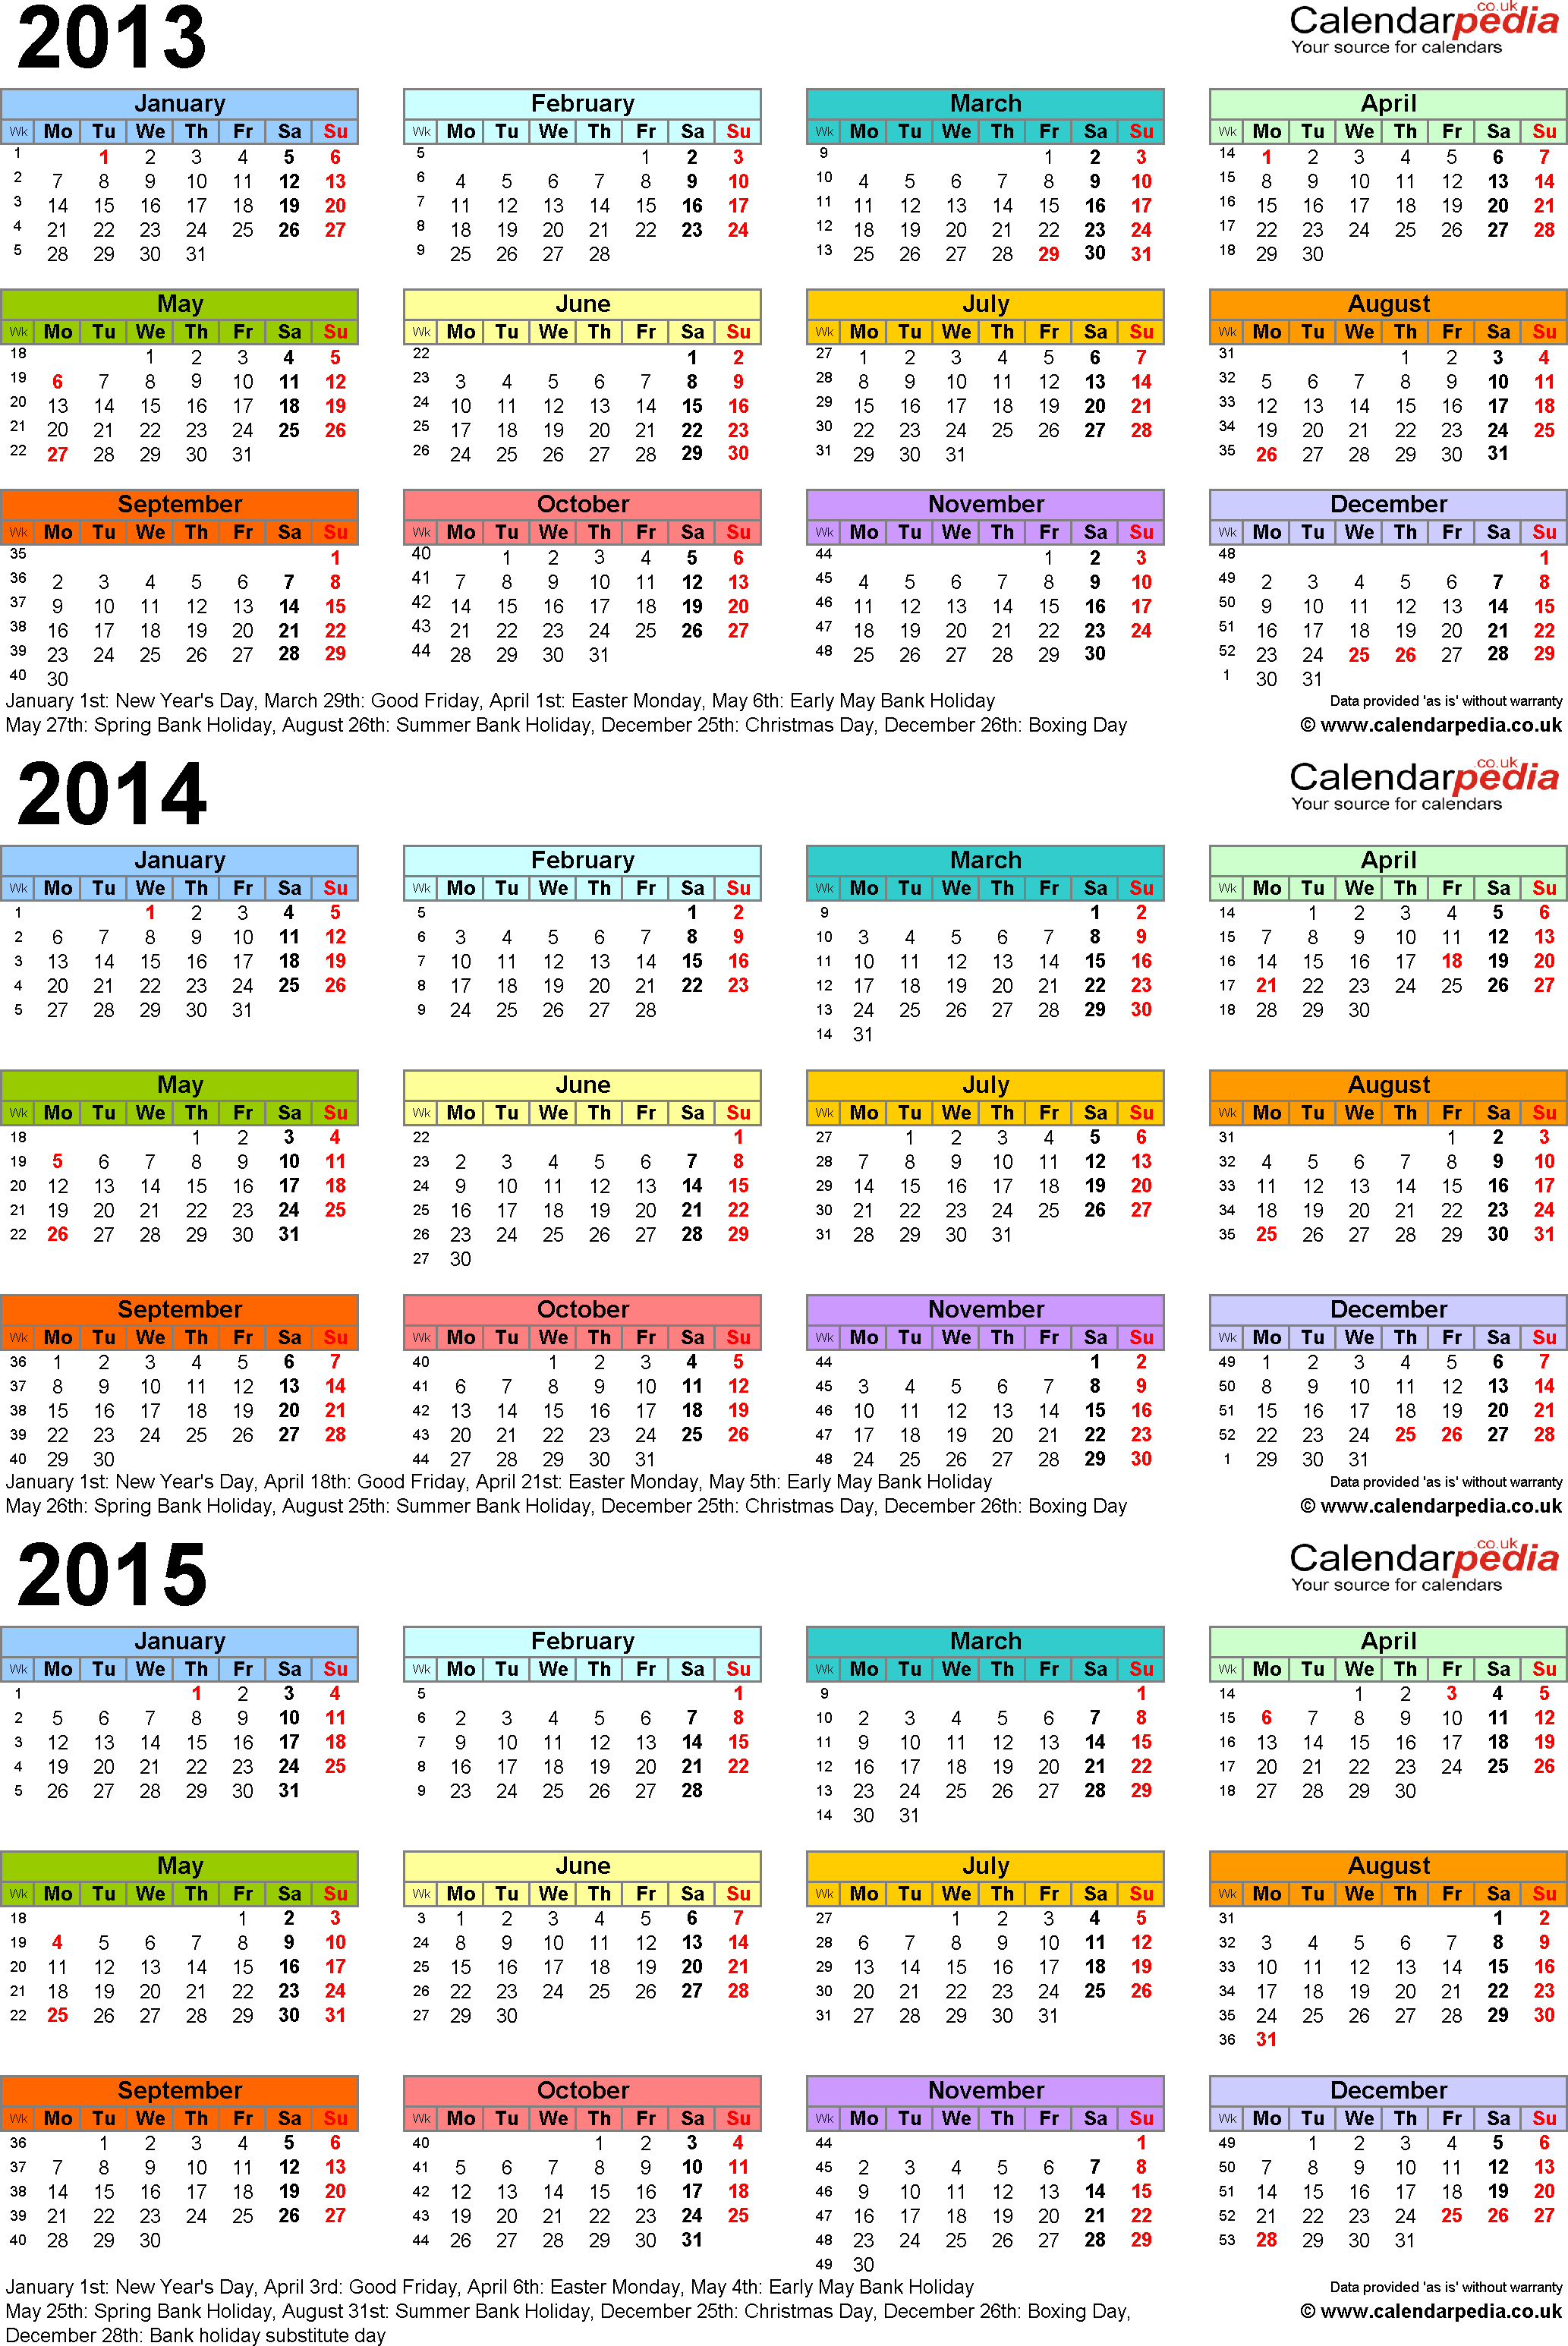 Template 3: PDF template for three year calendar 2013-2015 in colour (portrait orientation, 1 page, A4)